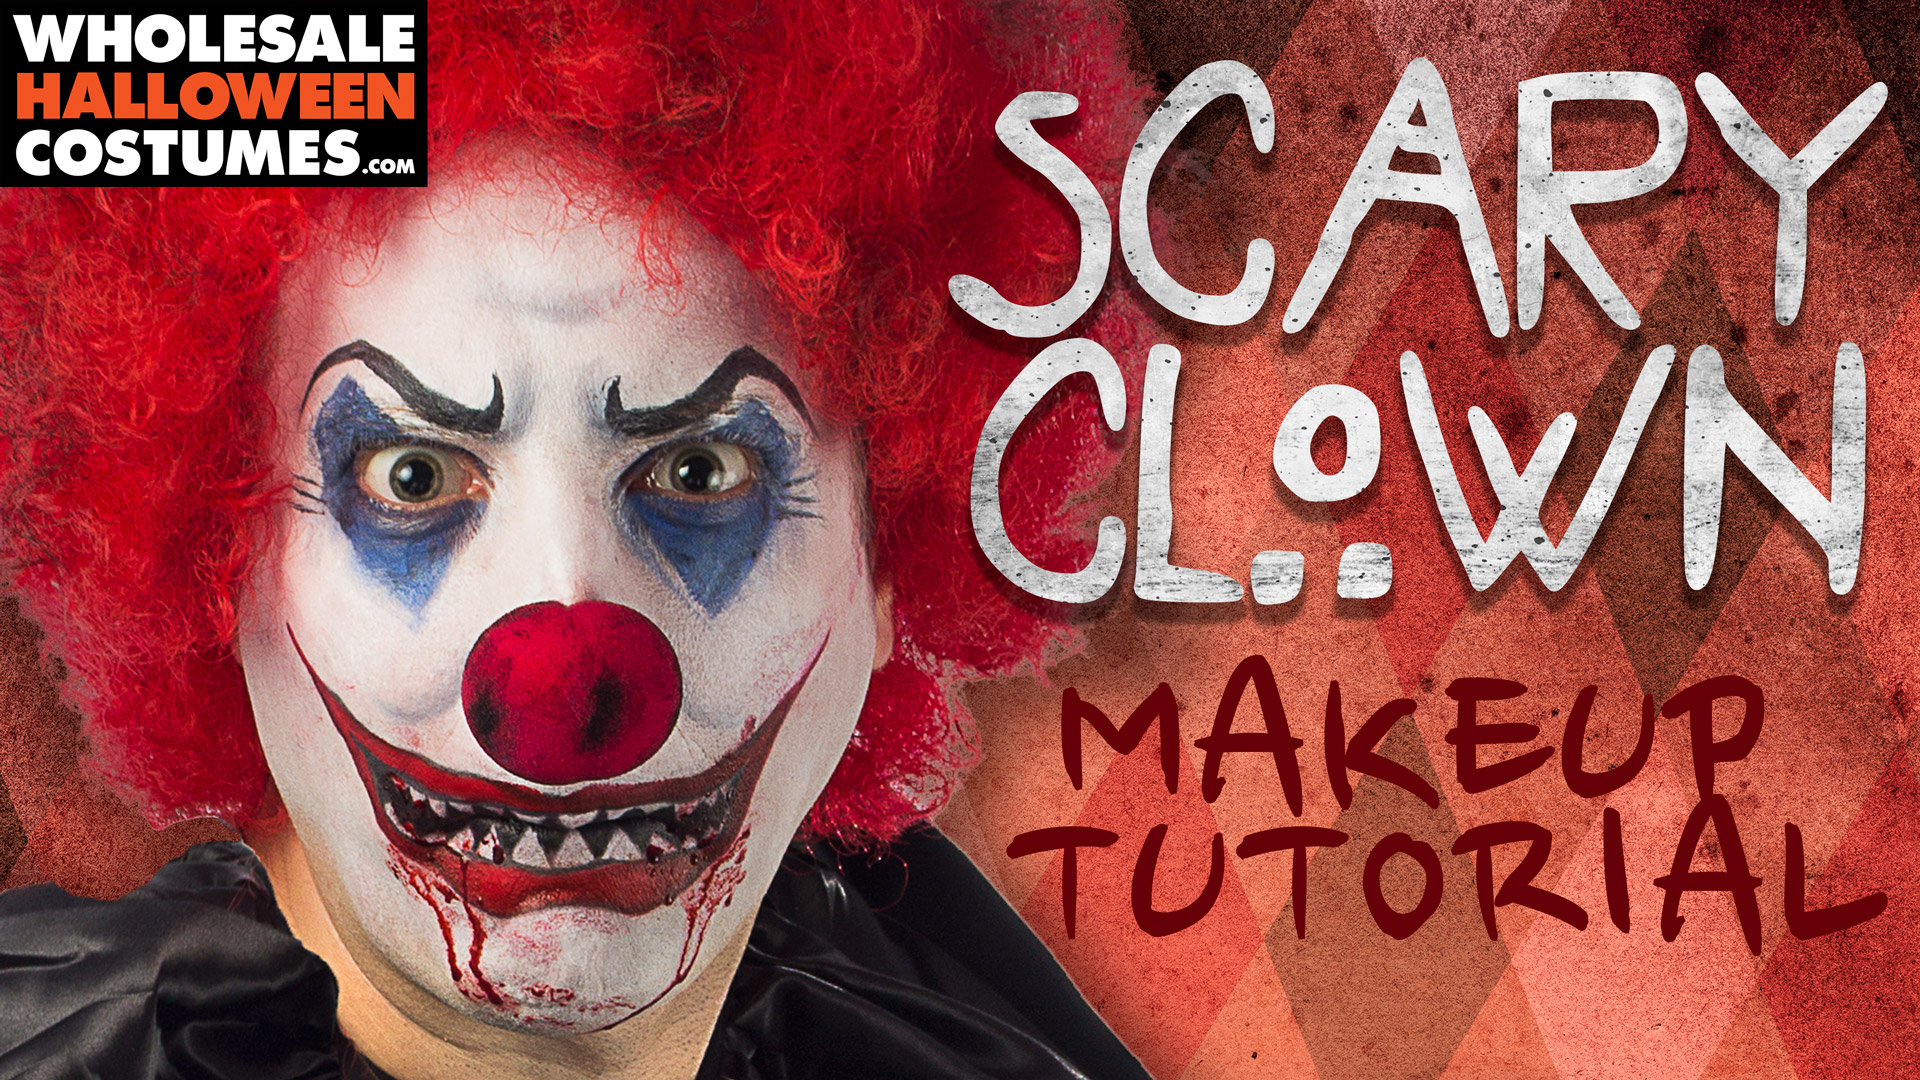 sc 1 st  Wholesale Halloween Costumes & Scary Clown Makeup Tutorial | Wholesale Halloween Costumes Blog